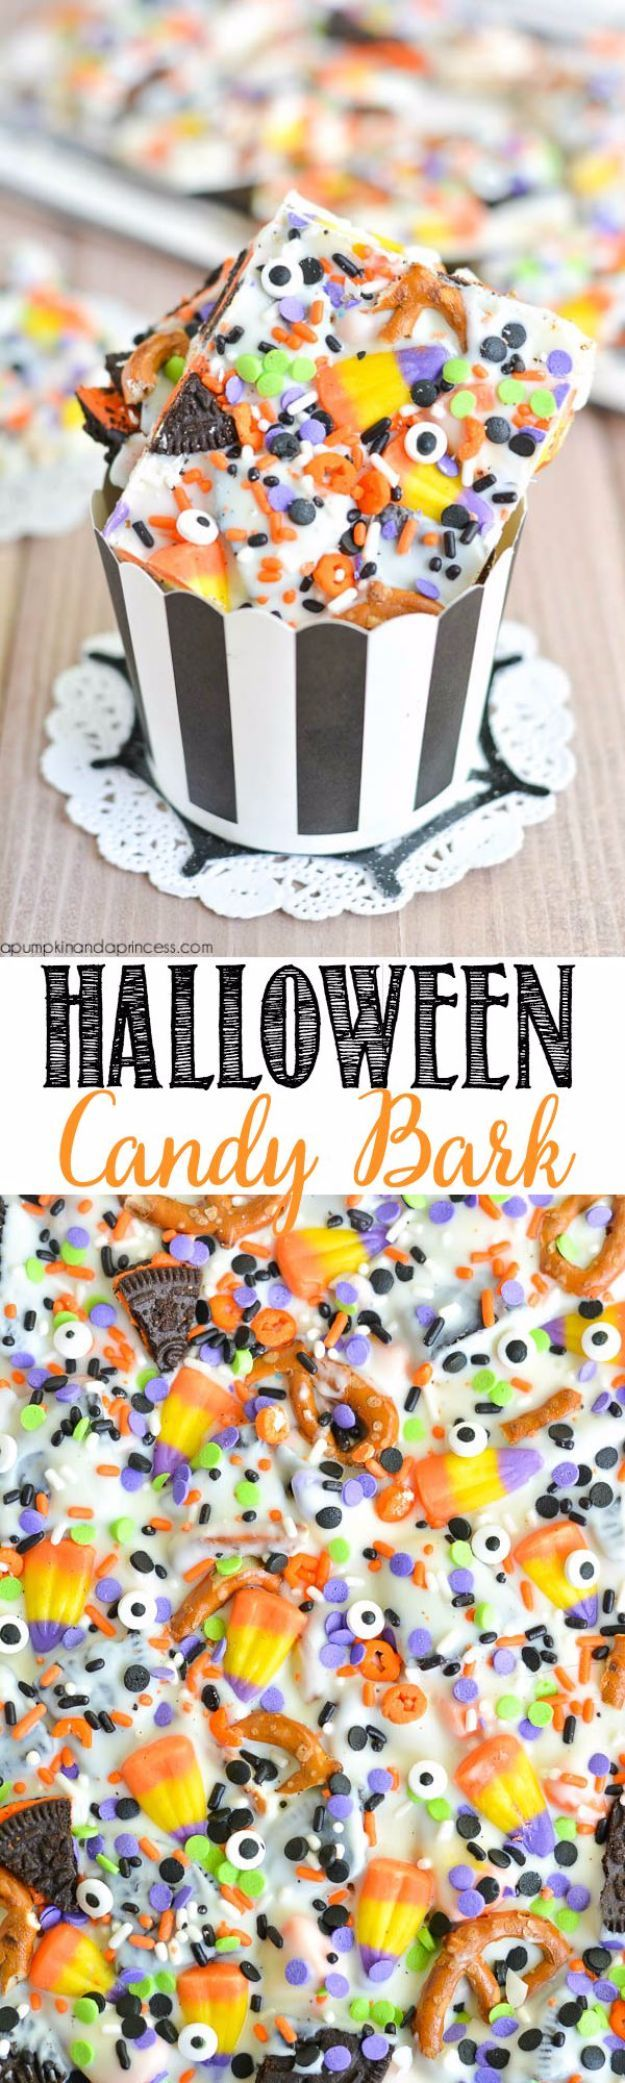 Best Halloween Party Snacks - Halloween Candy Bark - Healthy Ideas for Kids for School, Teens and Adults - Easy and Quick Recipes and Idea for Dips, Chips, Spooky Cookies and Treats - Appetizers and Finger Foods Made With Vegetables, No Candy, Cheap Food, Scary DIY Party Foods With Step by Step Tutorials http://diyjoy.com/halloween-party-snacks